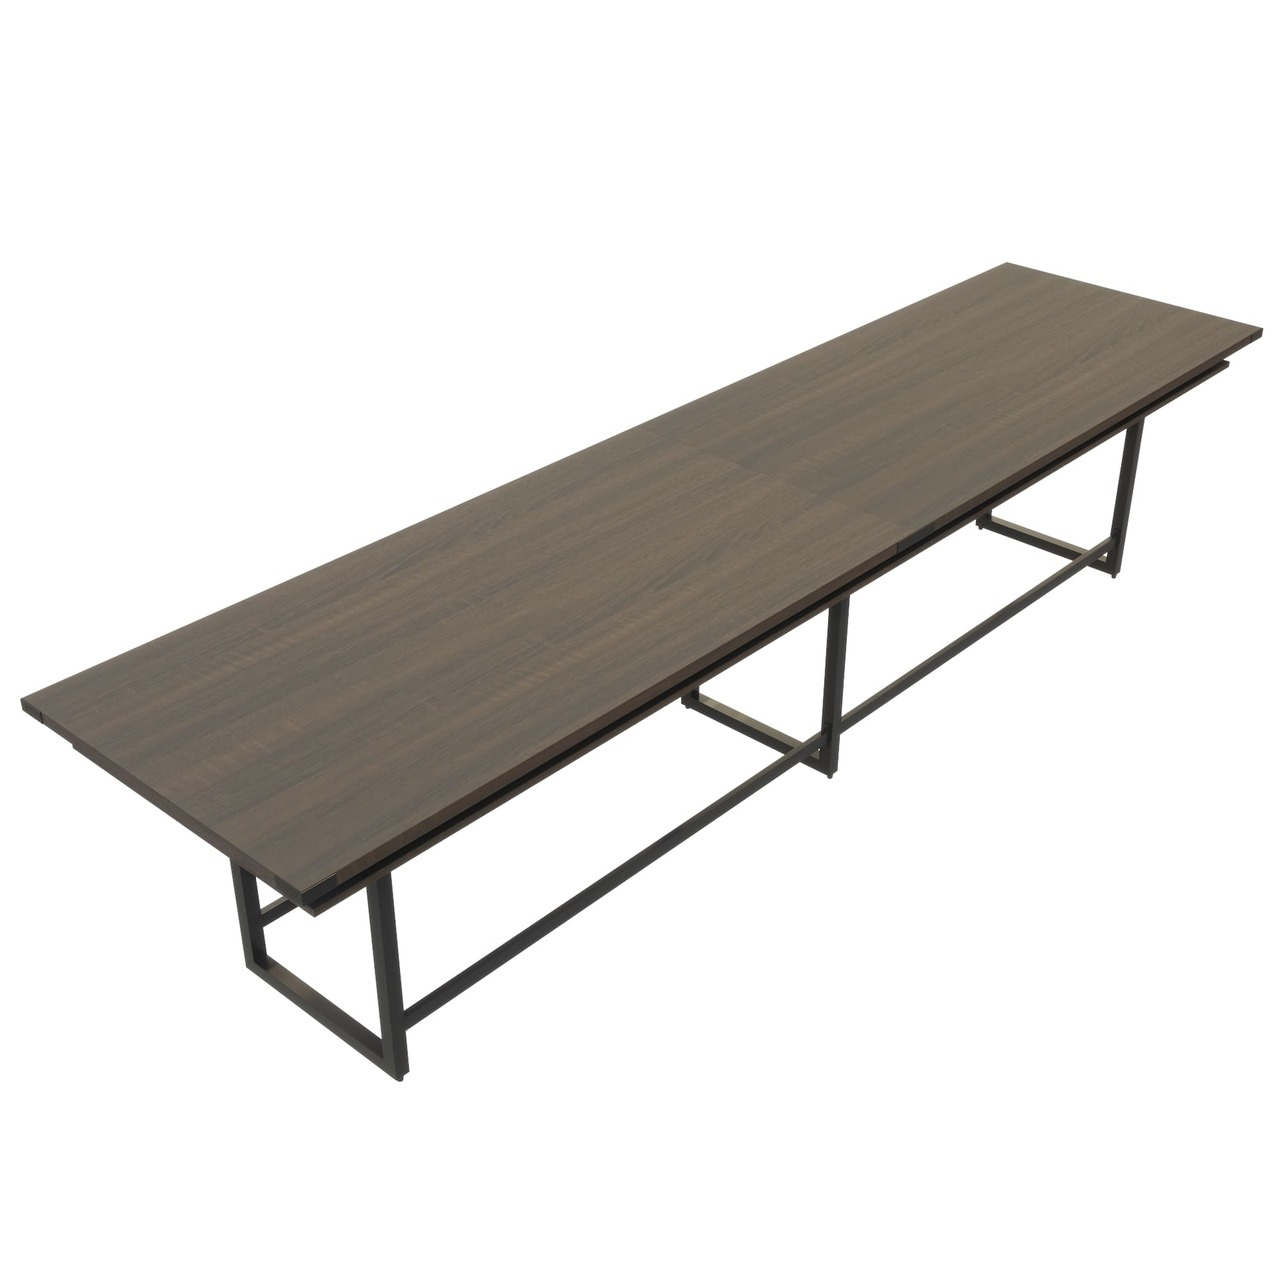 16' standing height mirella conference table